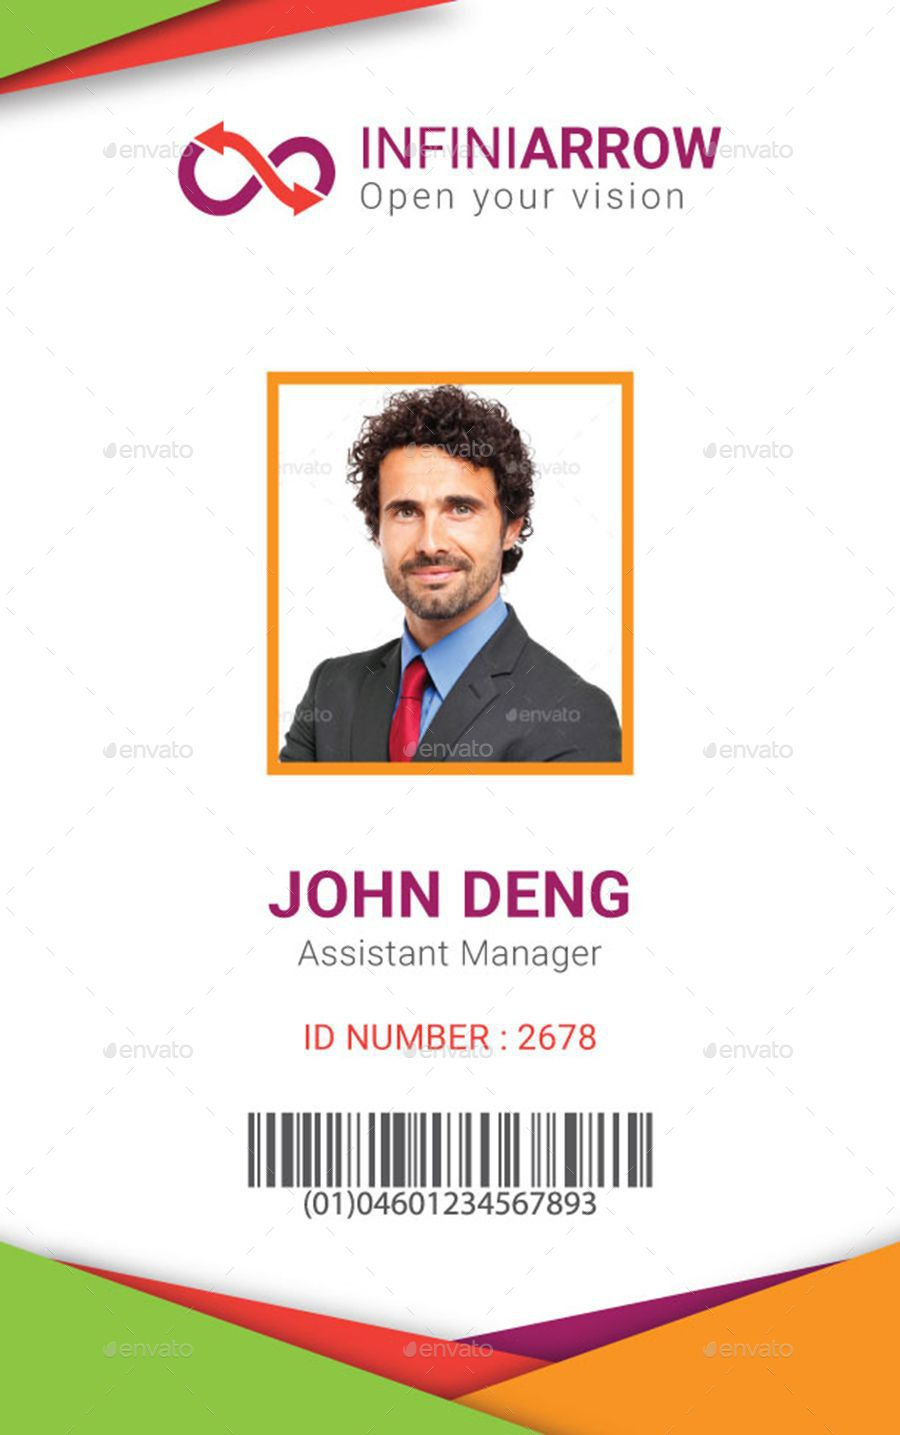 005 Amazing Id Badge Template Photoshop Example  EmployeeFull